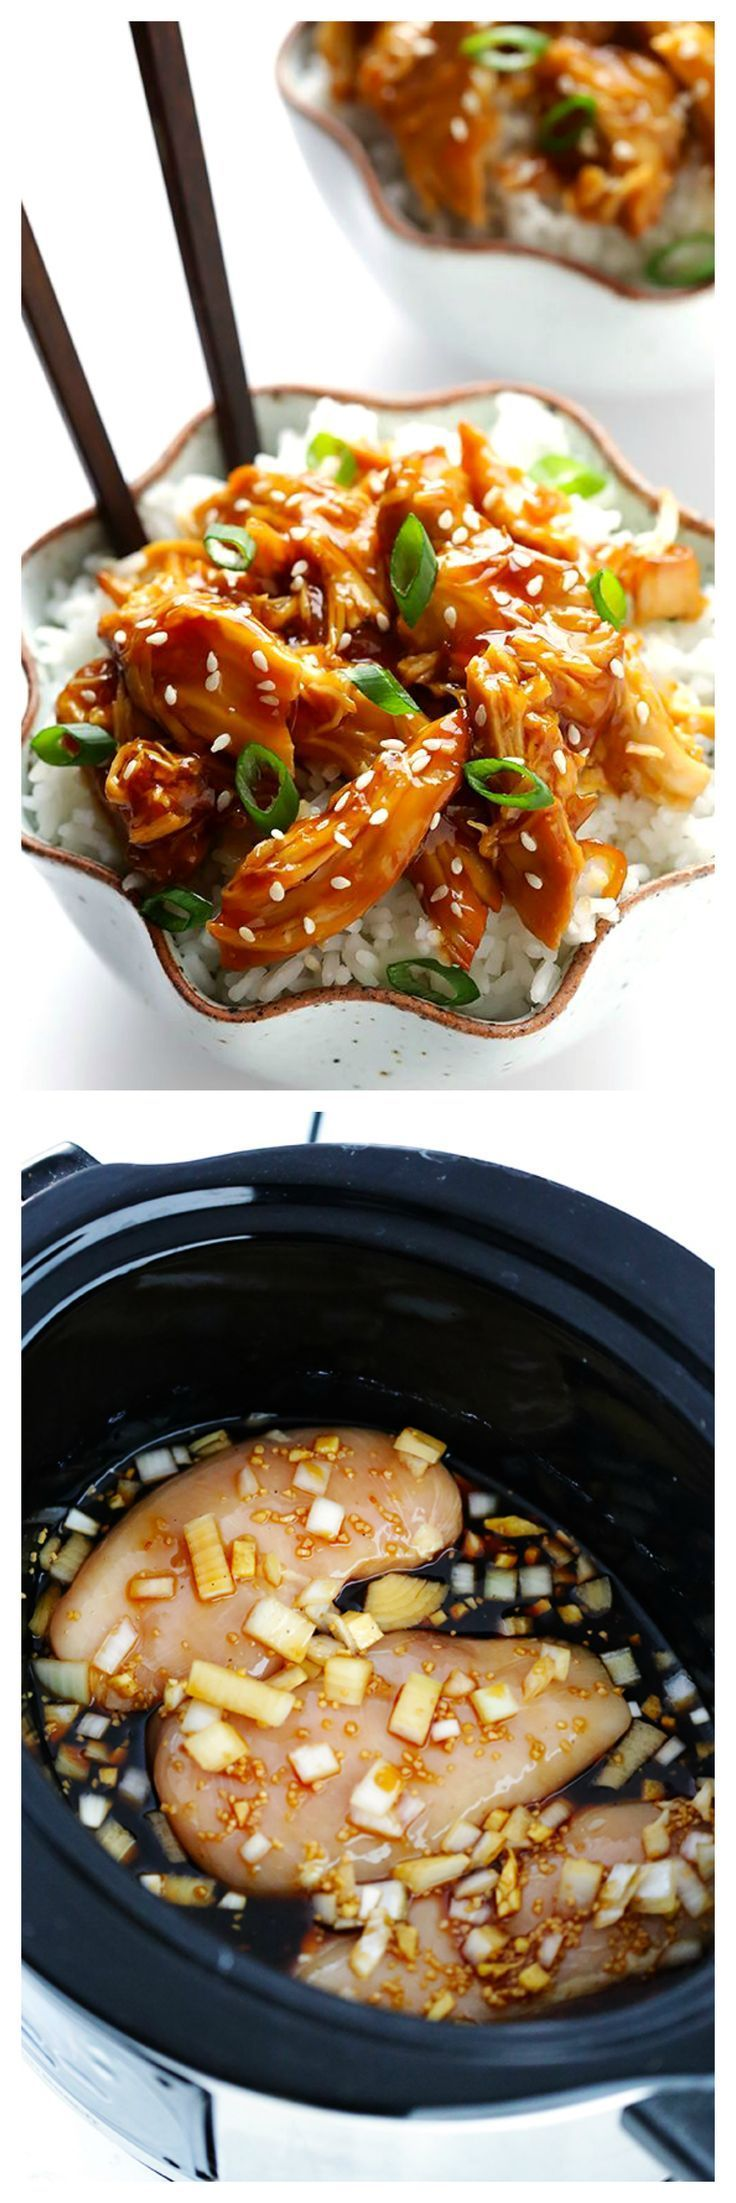 Cooker Teriyaki Chicken Slow Cooker Teriyaki Chicken -- this only take 10 minutes to check, and goes great with so many meals! | Slow Cooker Teriyaki Chicken -- this only take 10 minutes to check, and goes great with so many meals! |